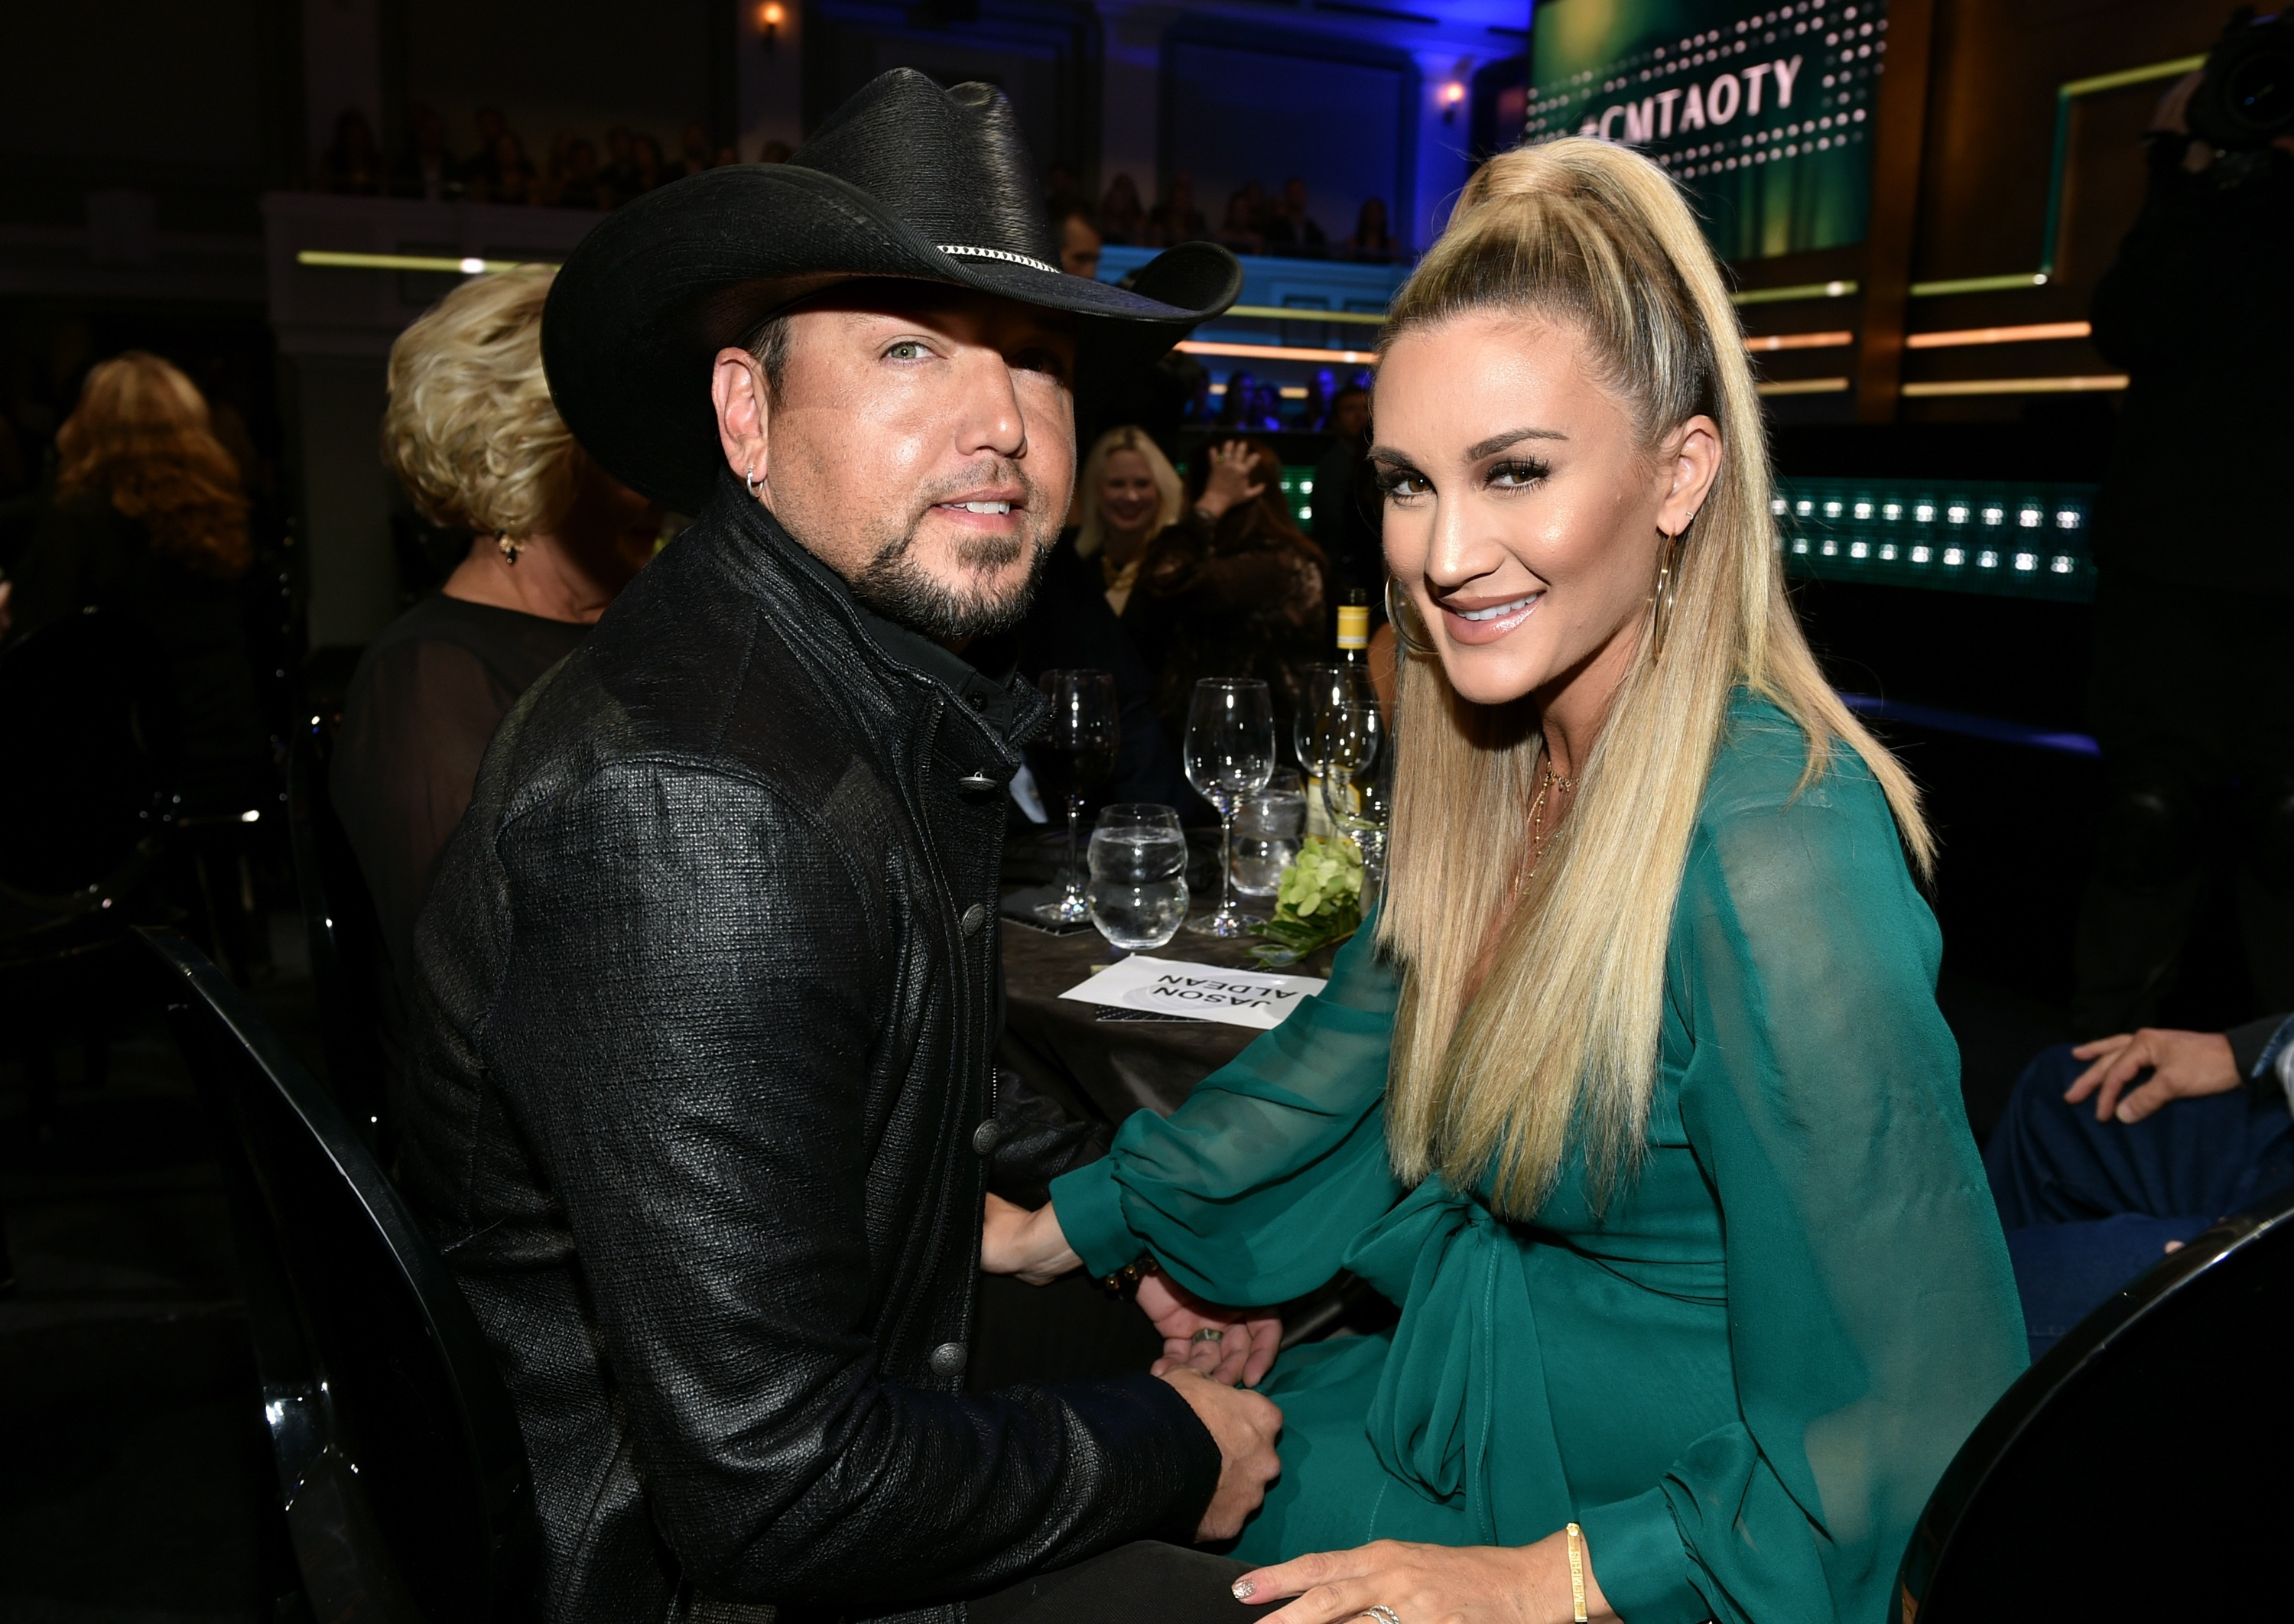 Jason Aldean and Brittany Kerr; Photo by John Shearer/Getty Images for CMT